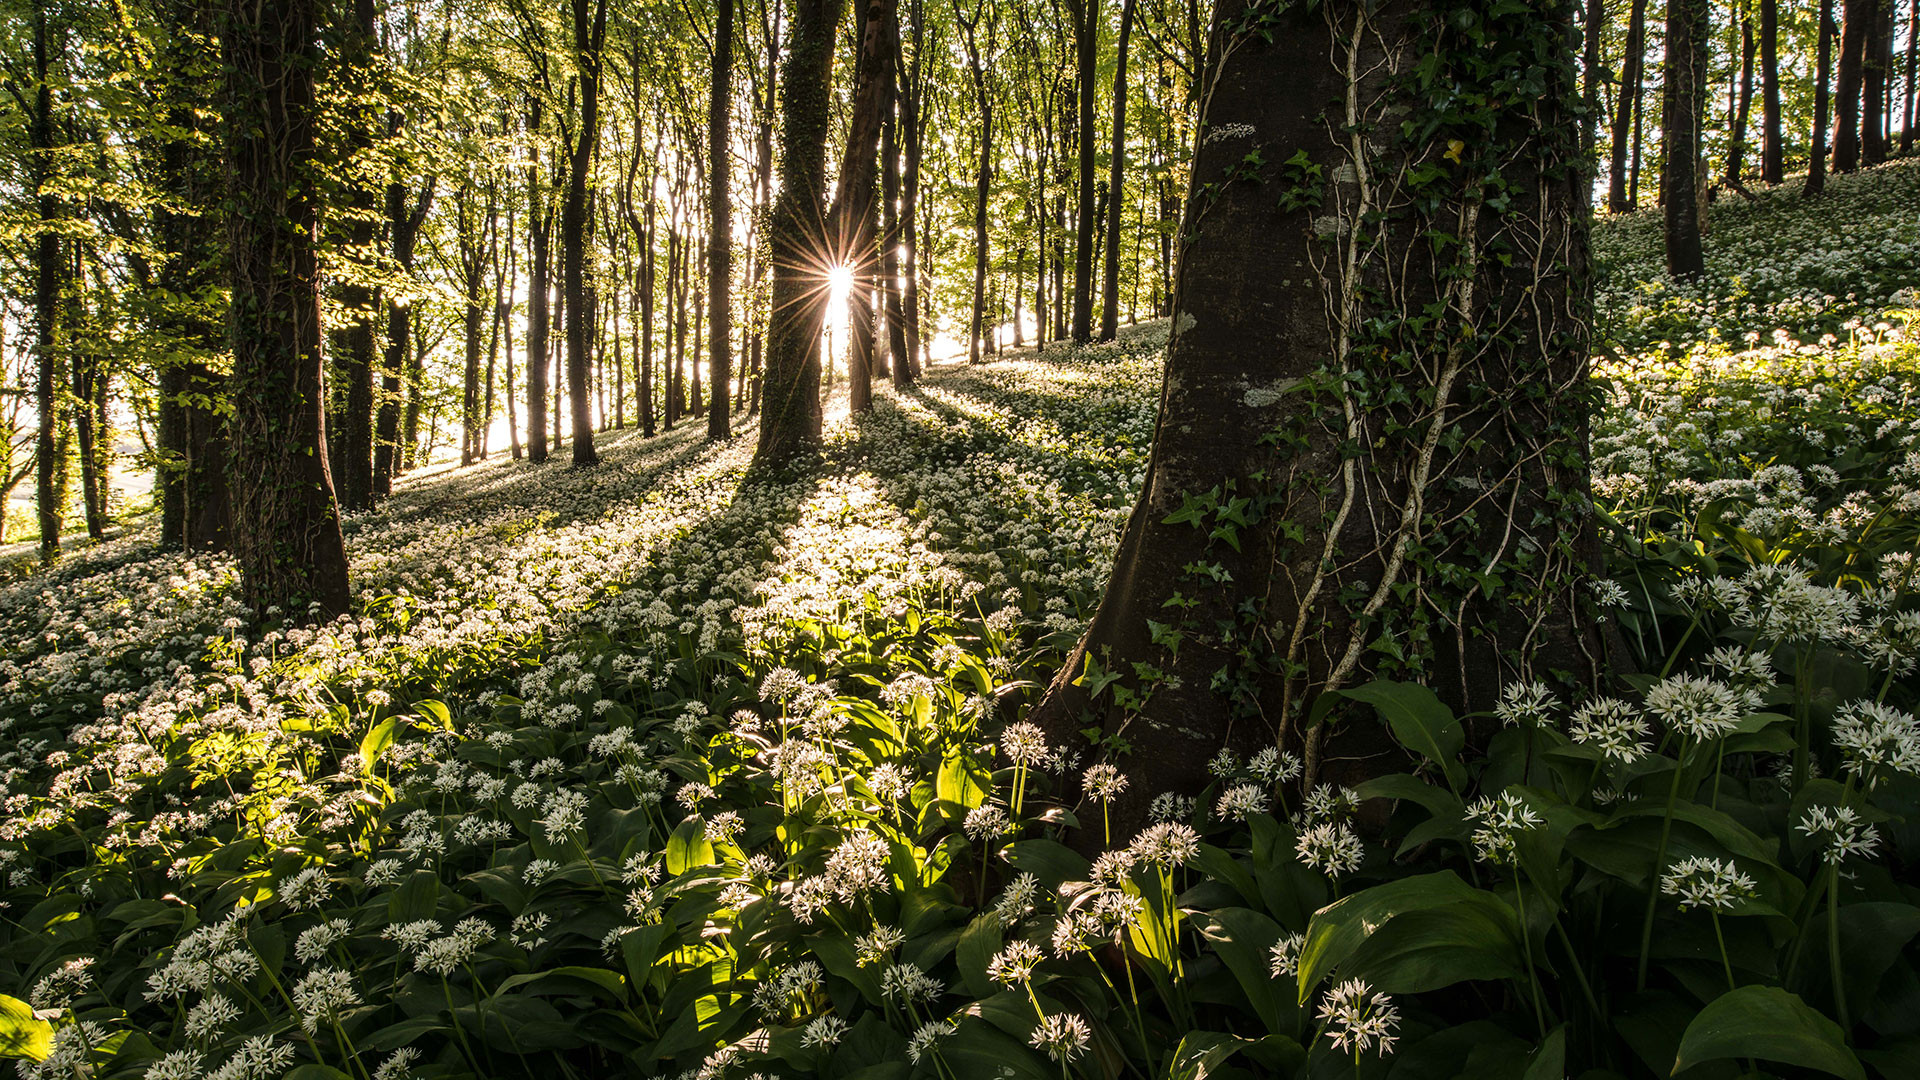 Pink Lady Food Photographer of the Year Food in the Field, Robin Goodlad, The Carpet of Wild Garlic